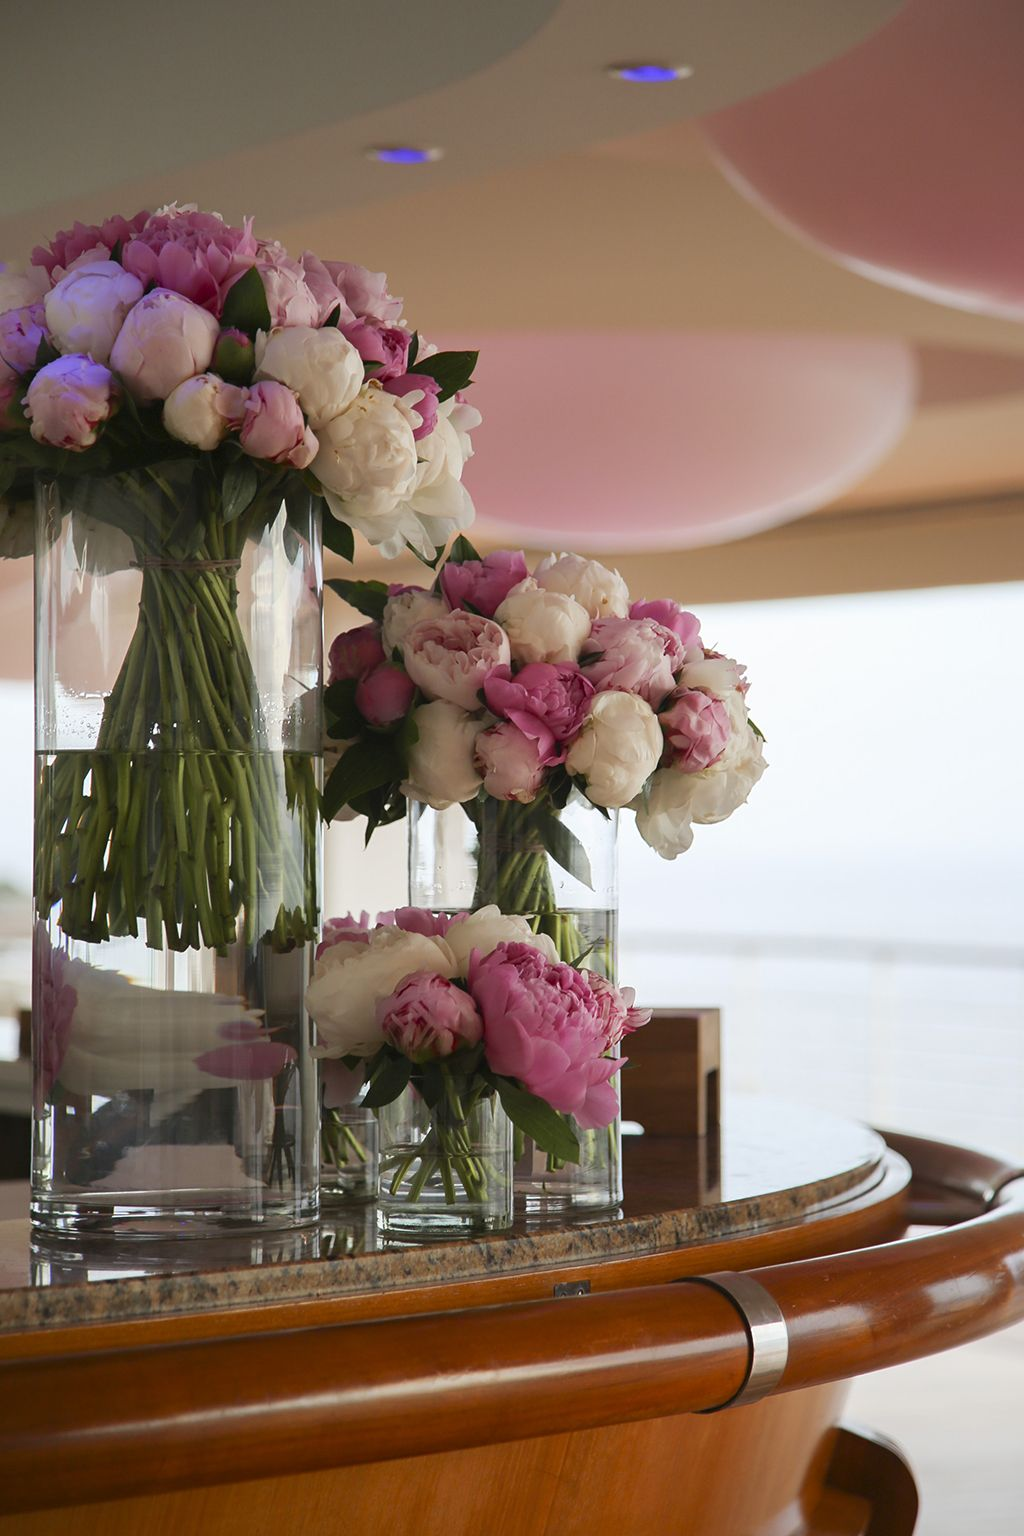 Cannes - a simple way to decorate the garden with luxurious flowers